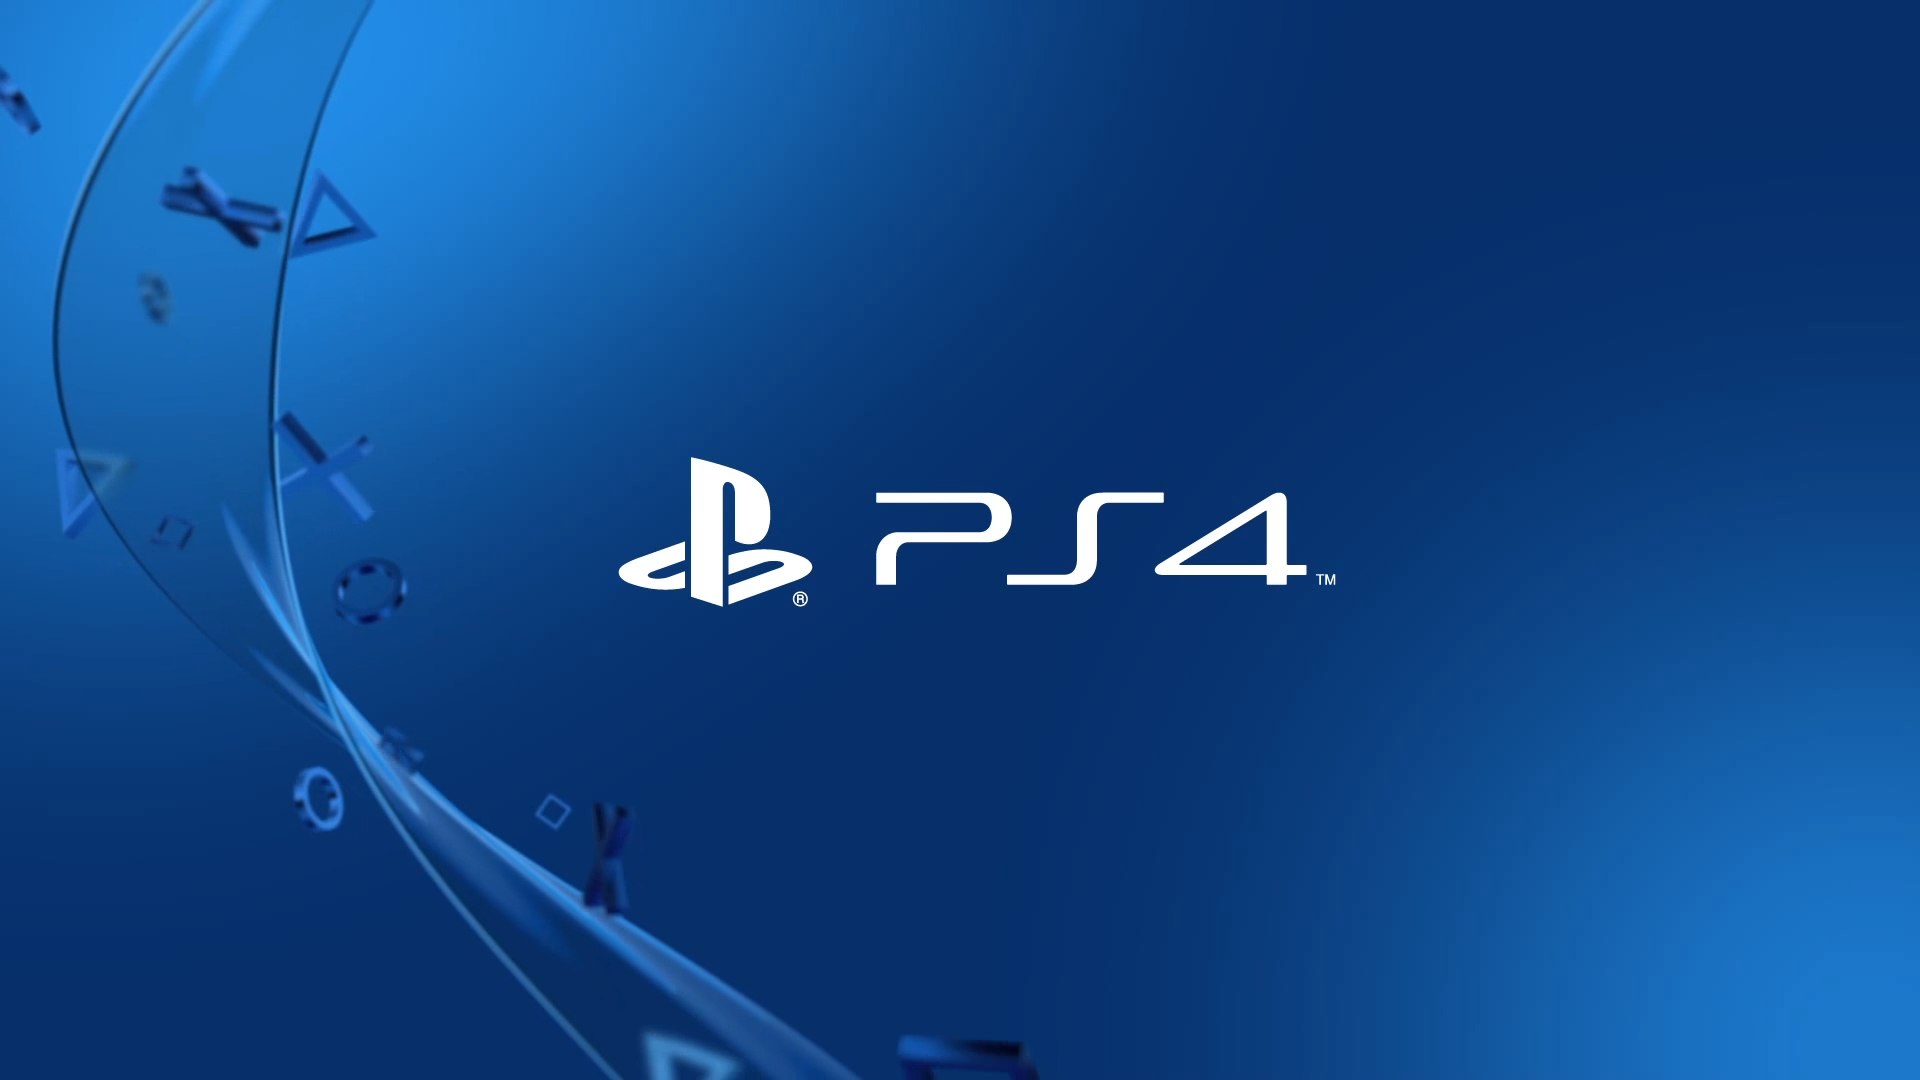 PS4 Logo HD Wallpaper